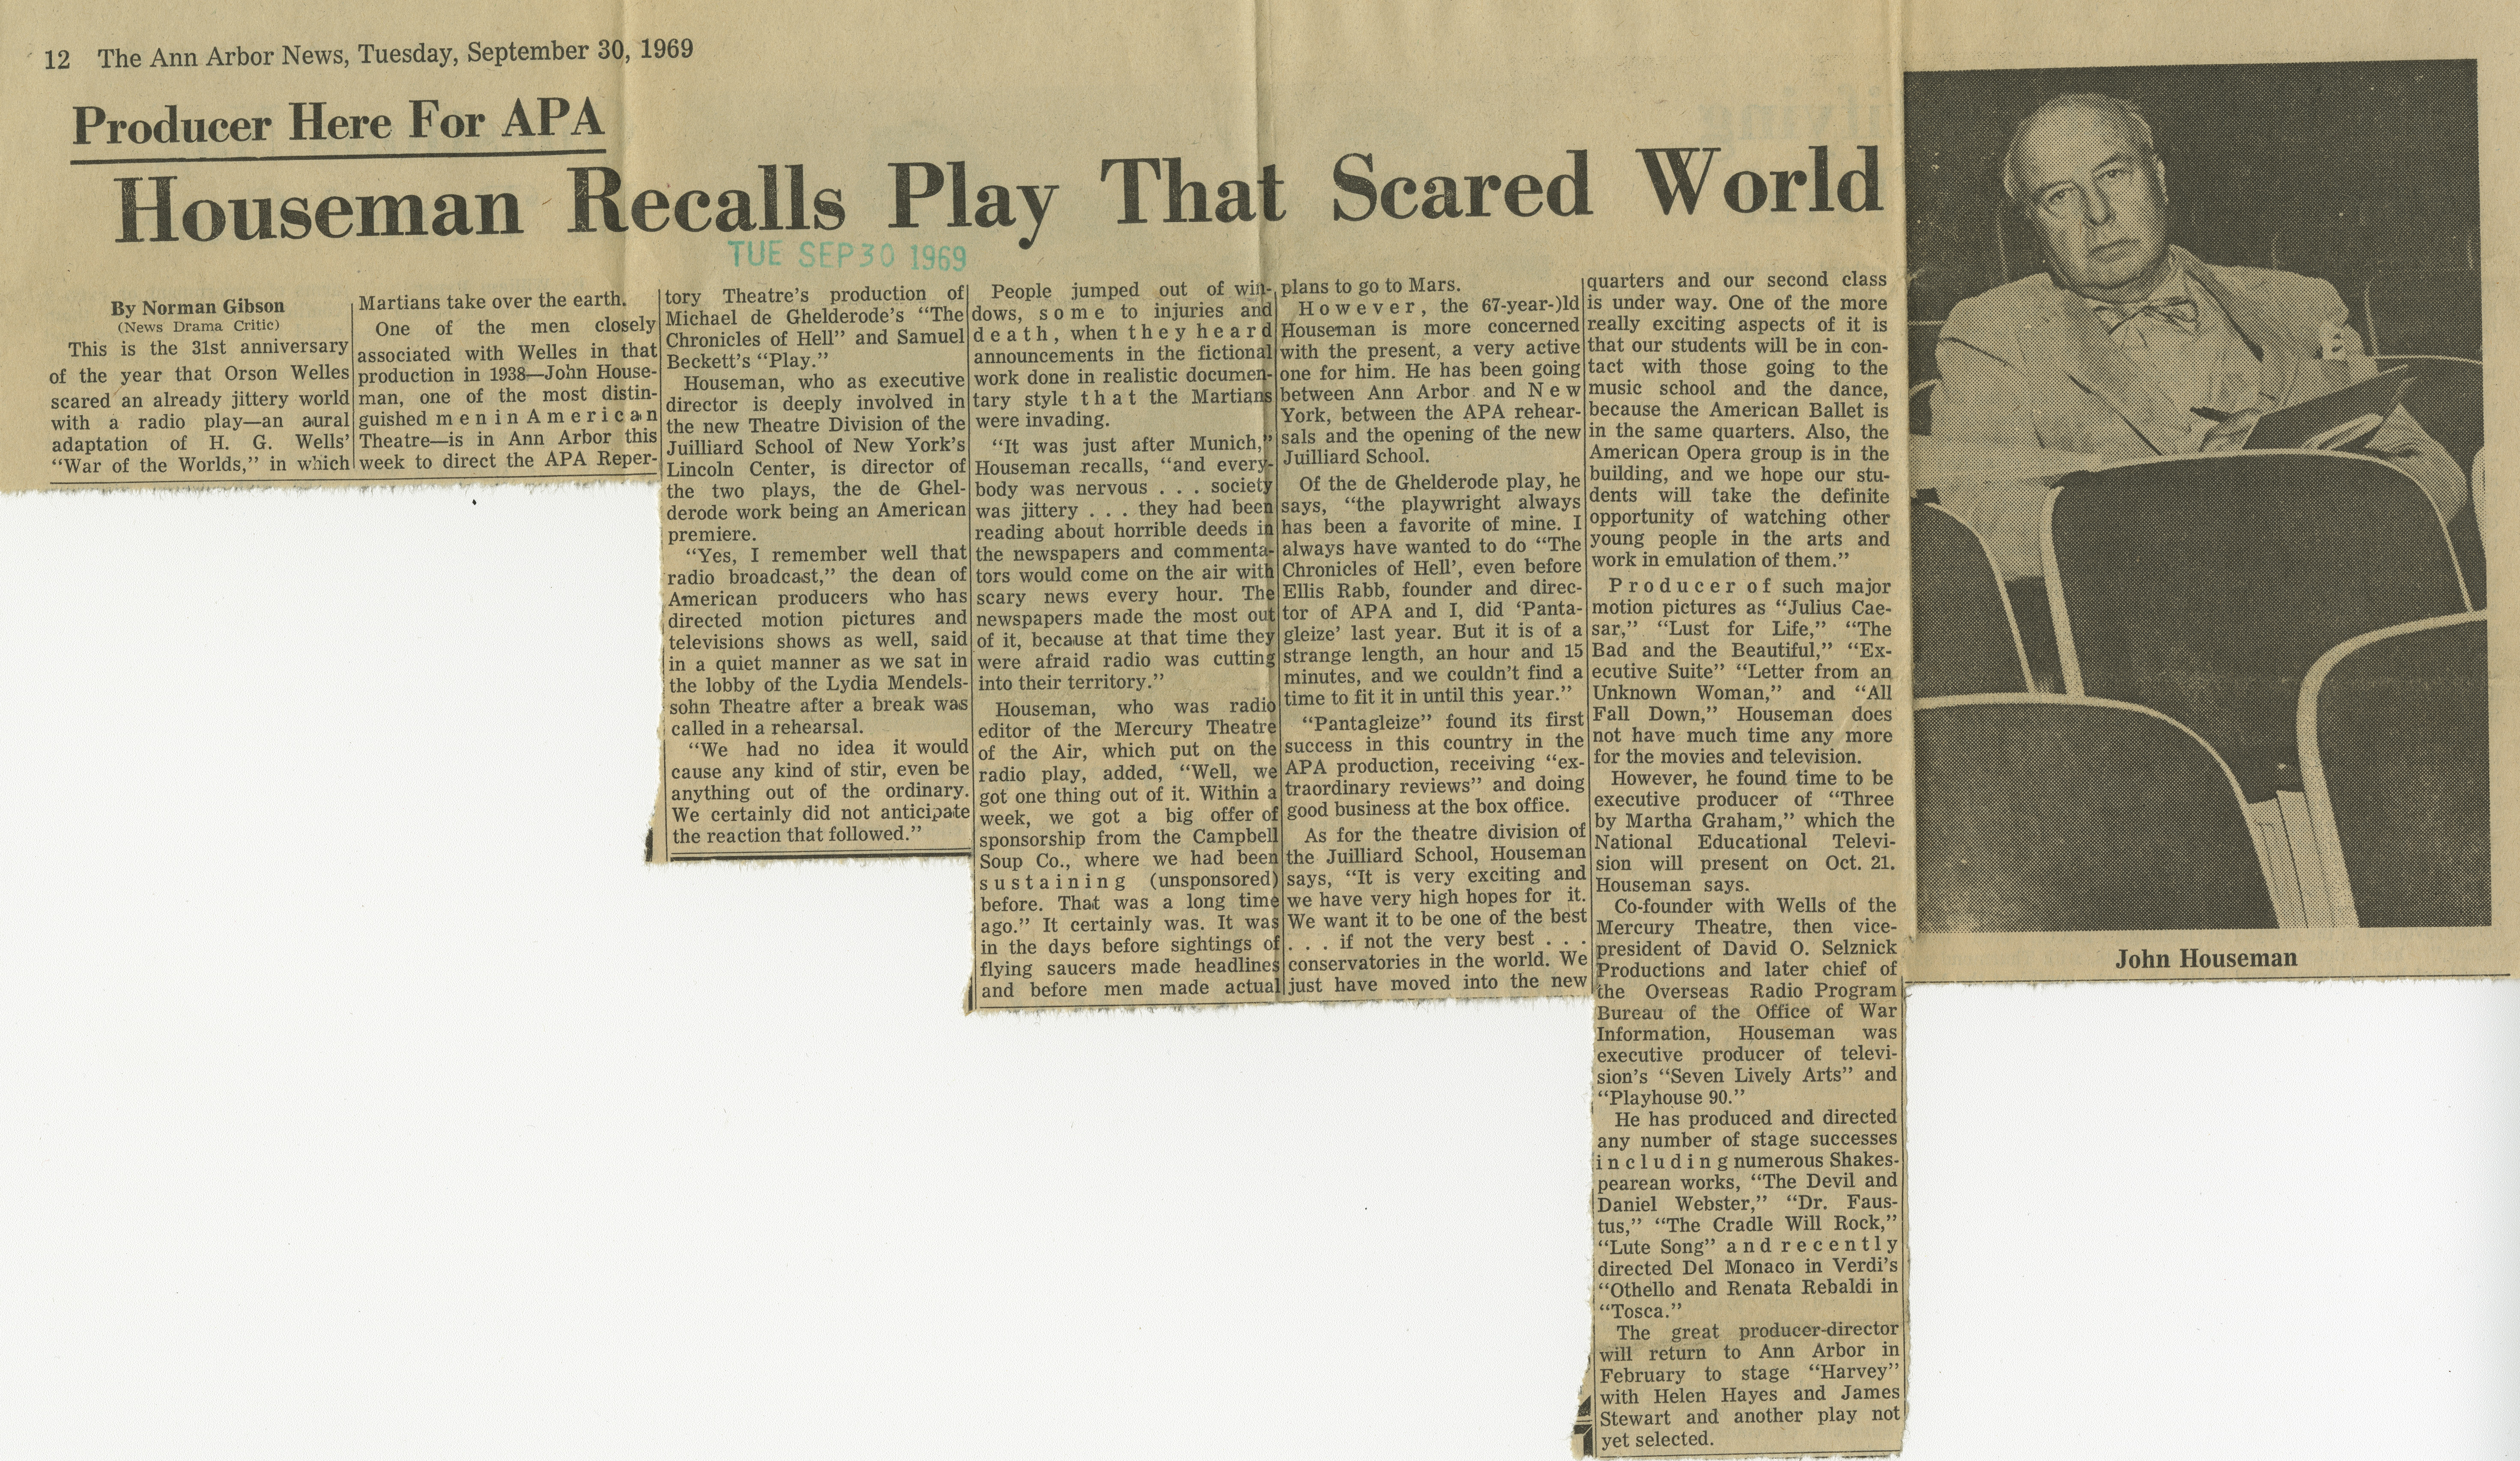 Houseman Recalls Play That Scared World image